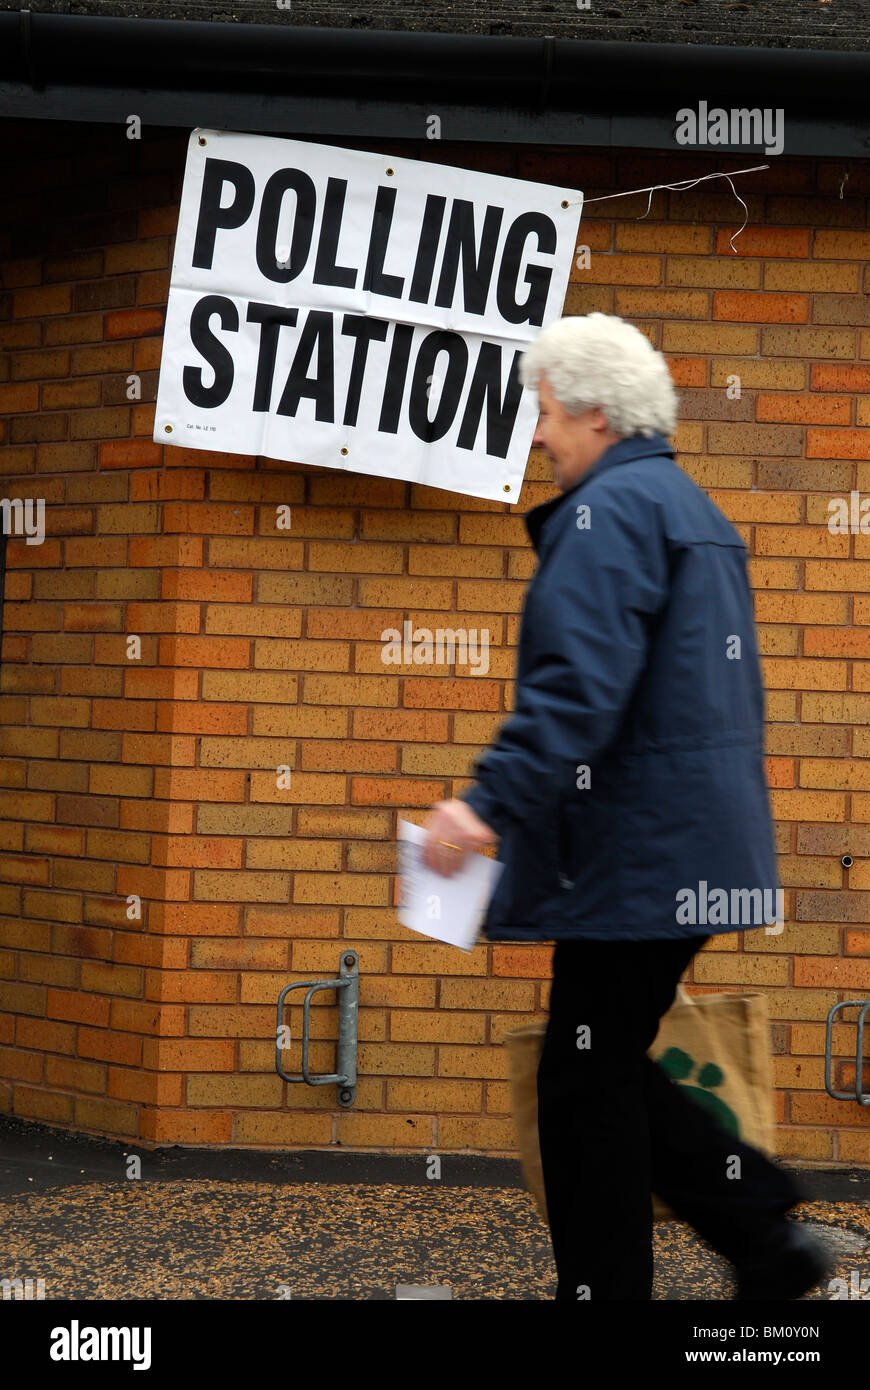 Elderly woman en route to polling station to cast her vote in May 2010 general election in UK, Bordon, Hampshire, - Stock Image